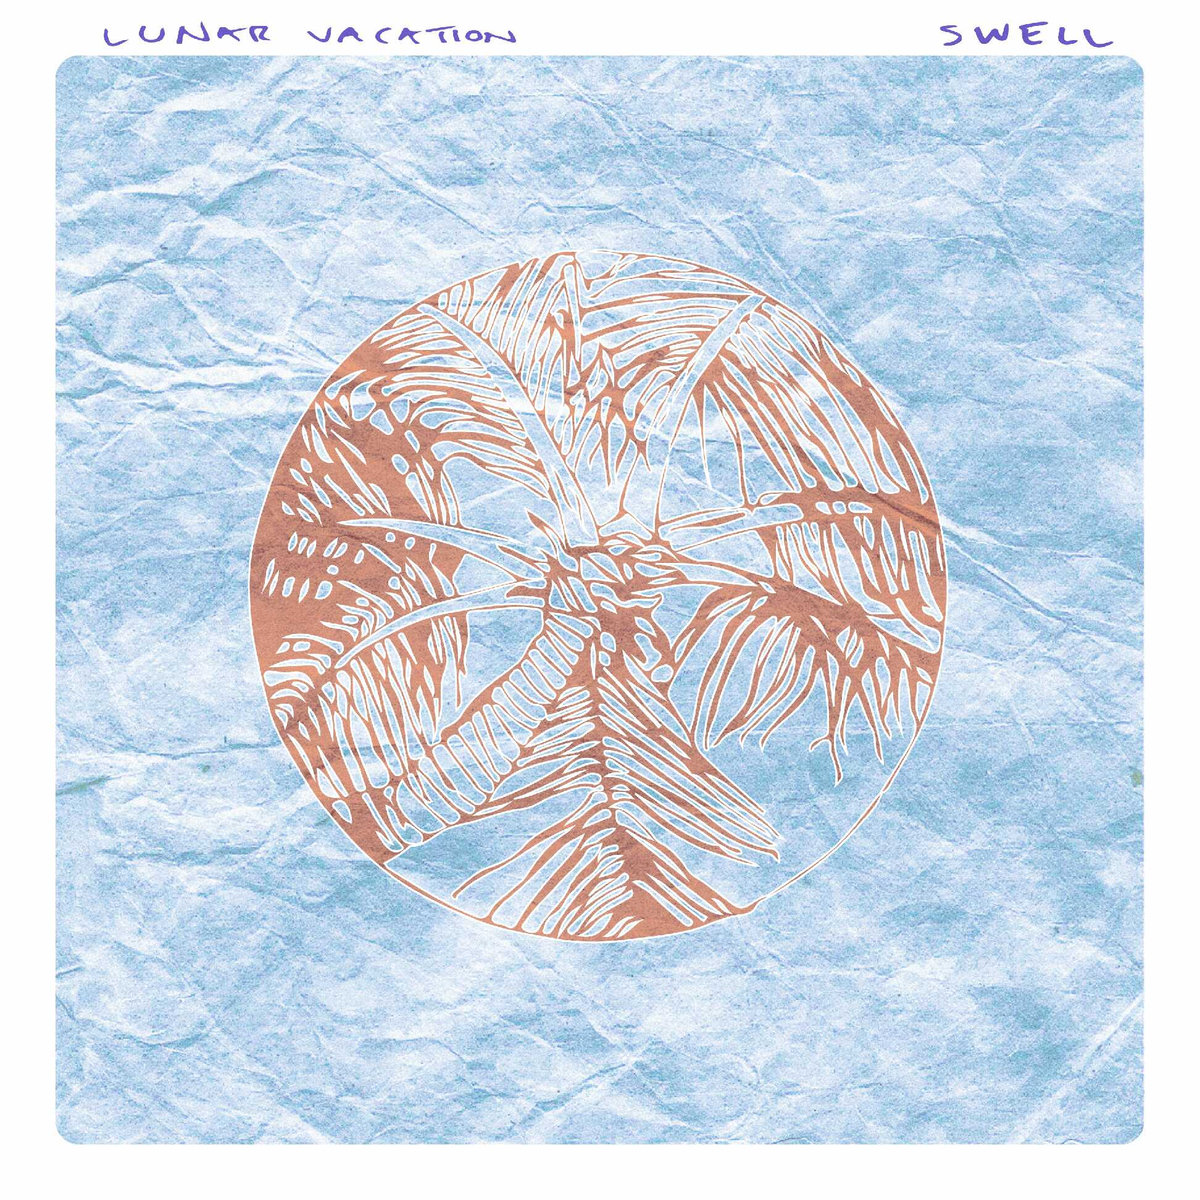 Lunar Vacation - Swell